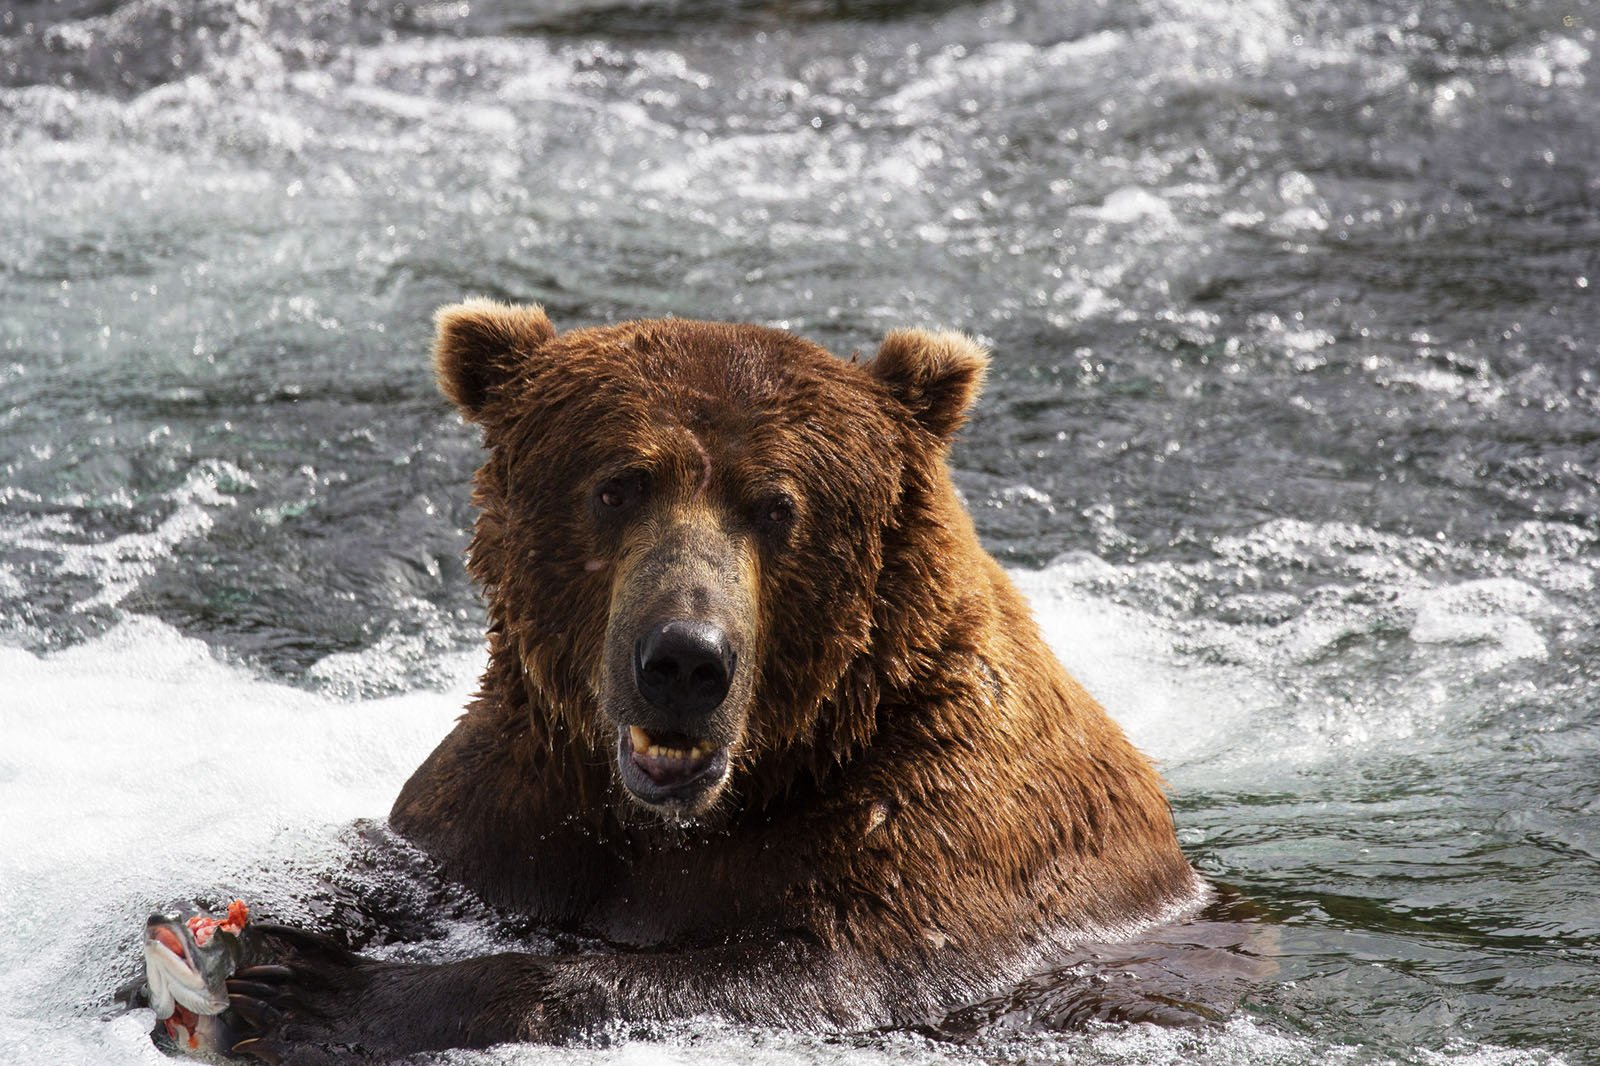 How to see Grizzly bears in Anchorage